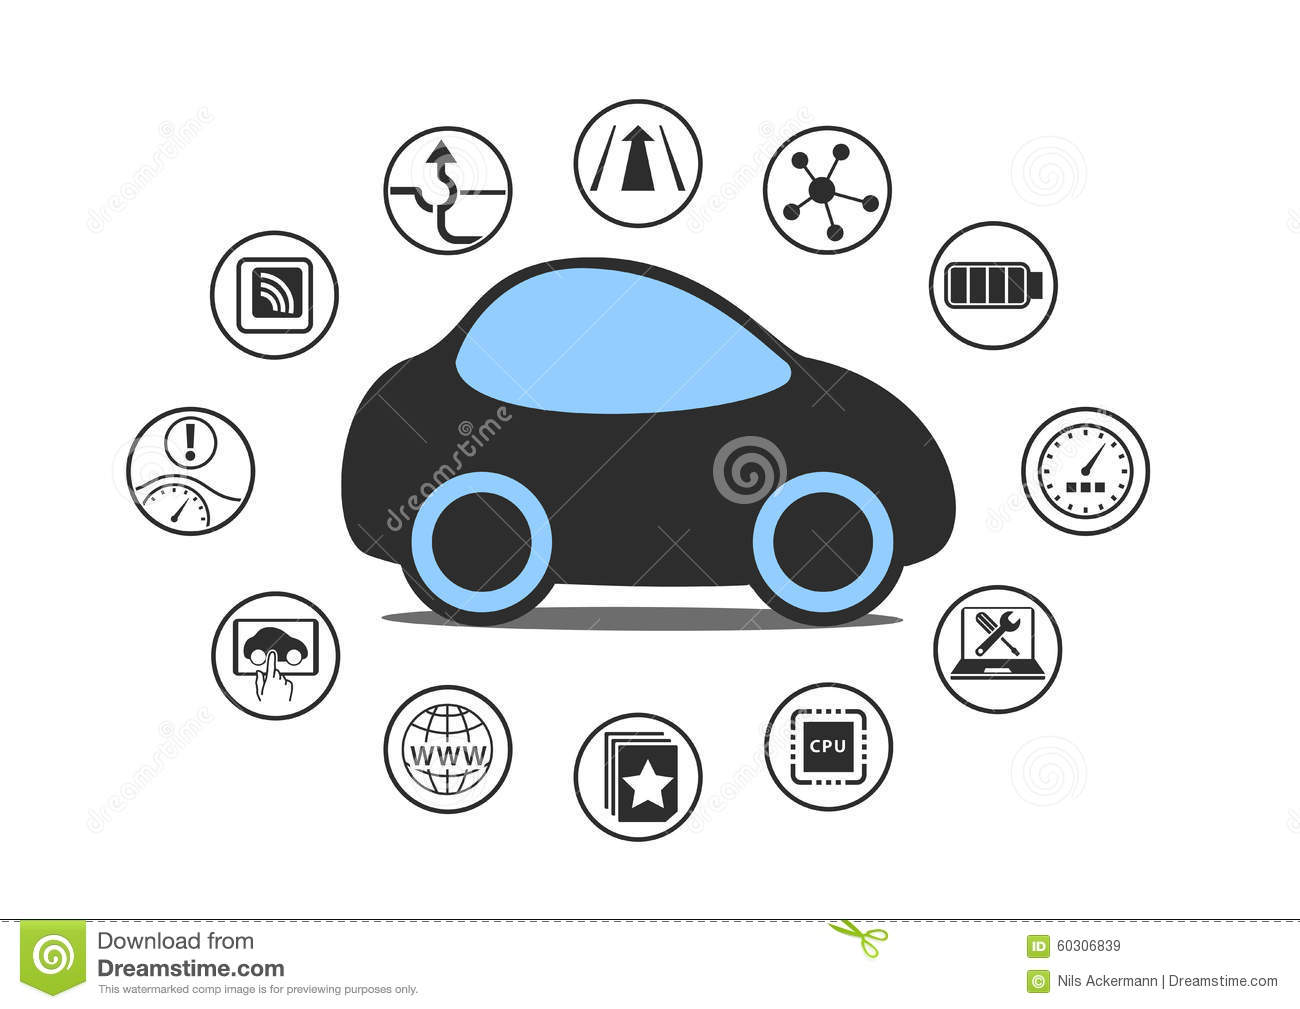 Self driving car and autonomous vehicle concept. Icon of driverless car with sensors like lane assistance, head up display.